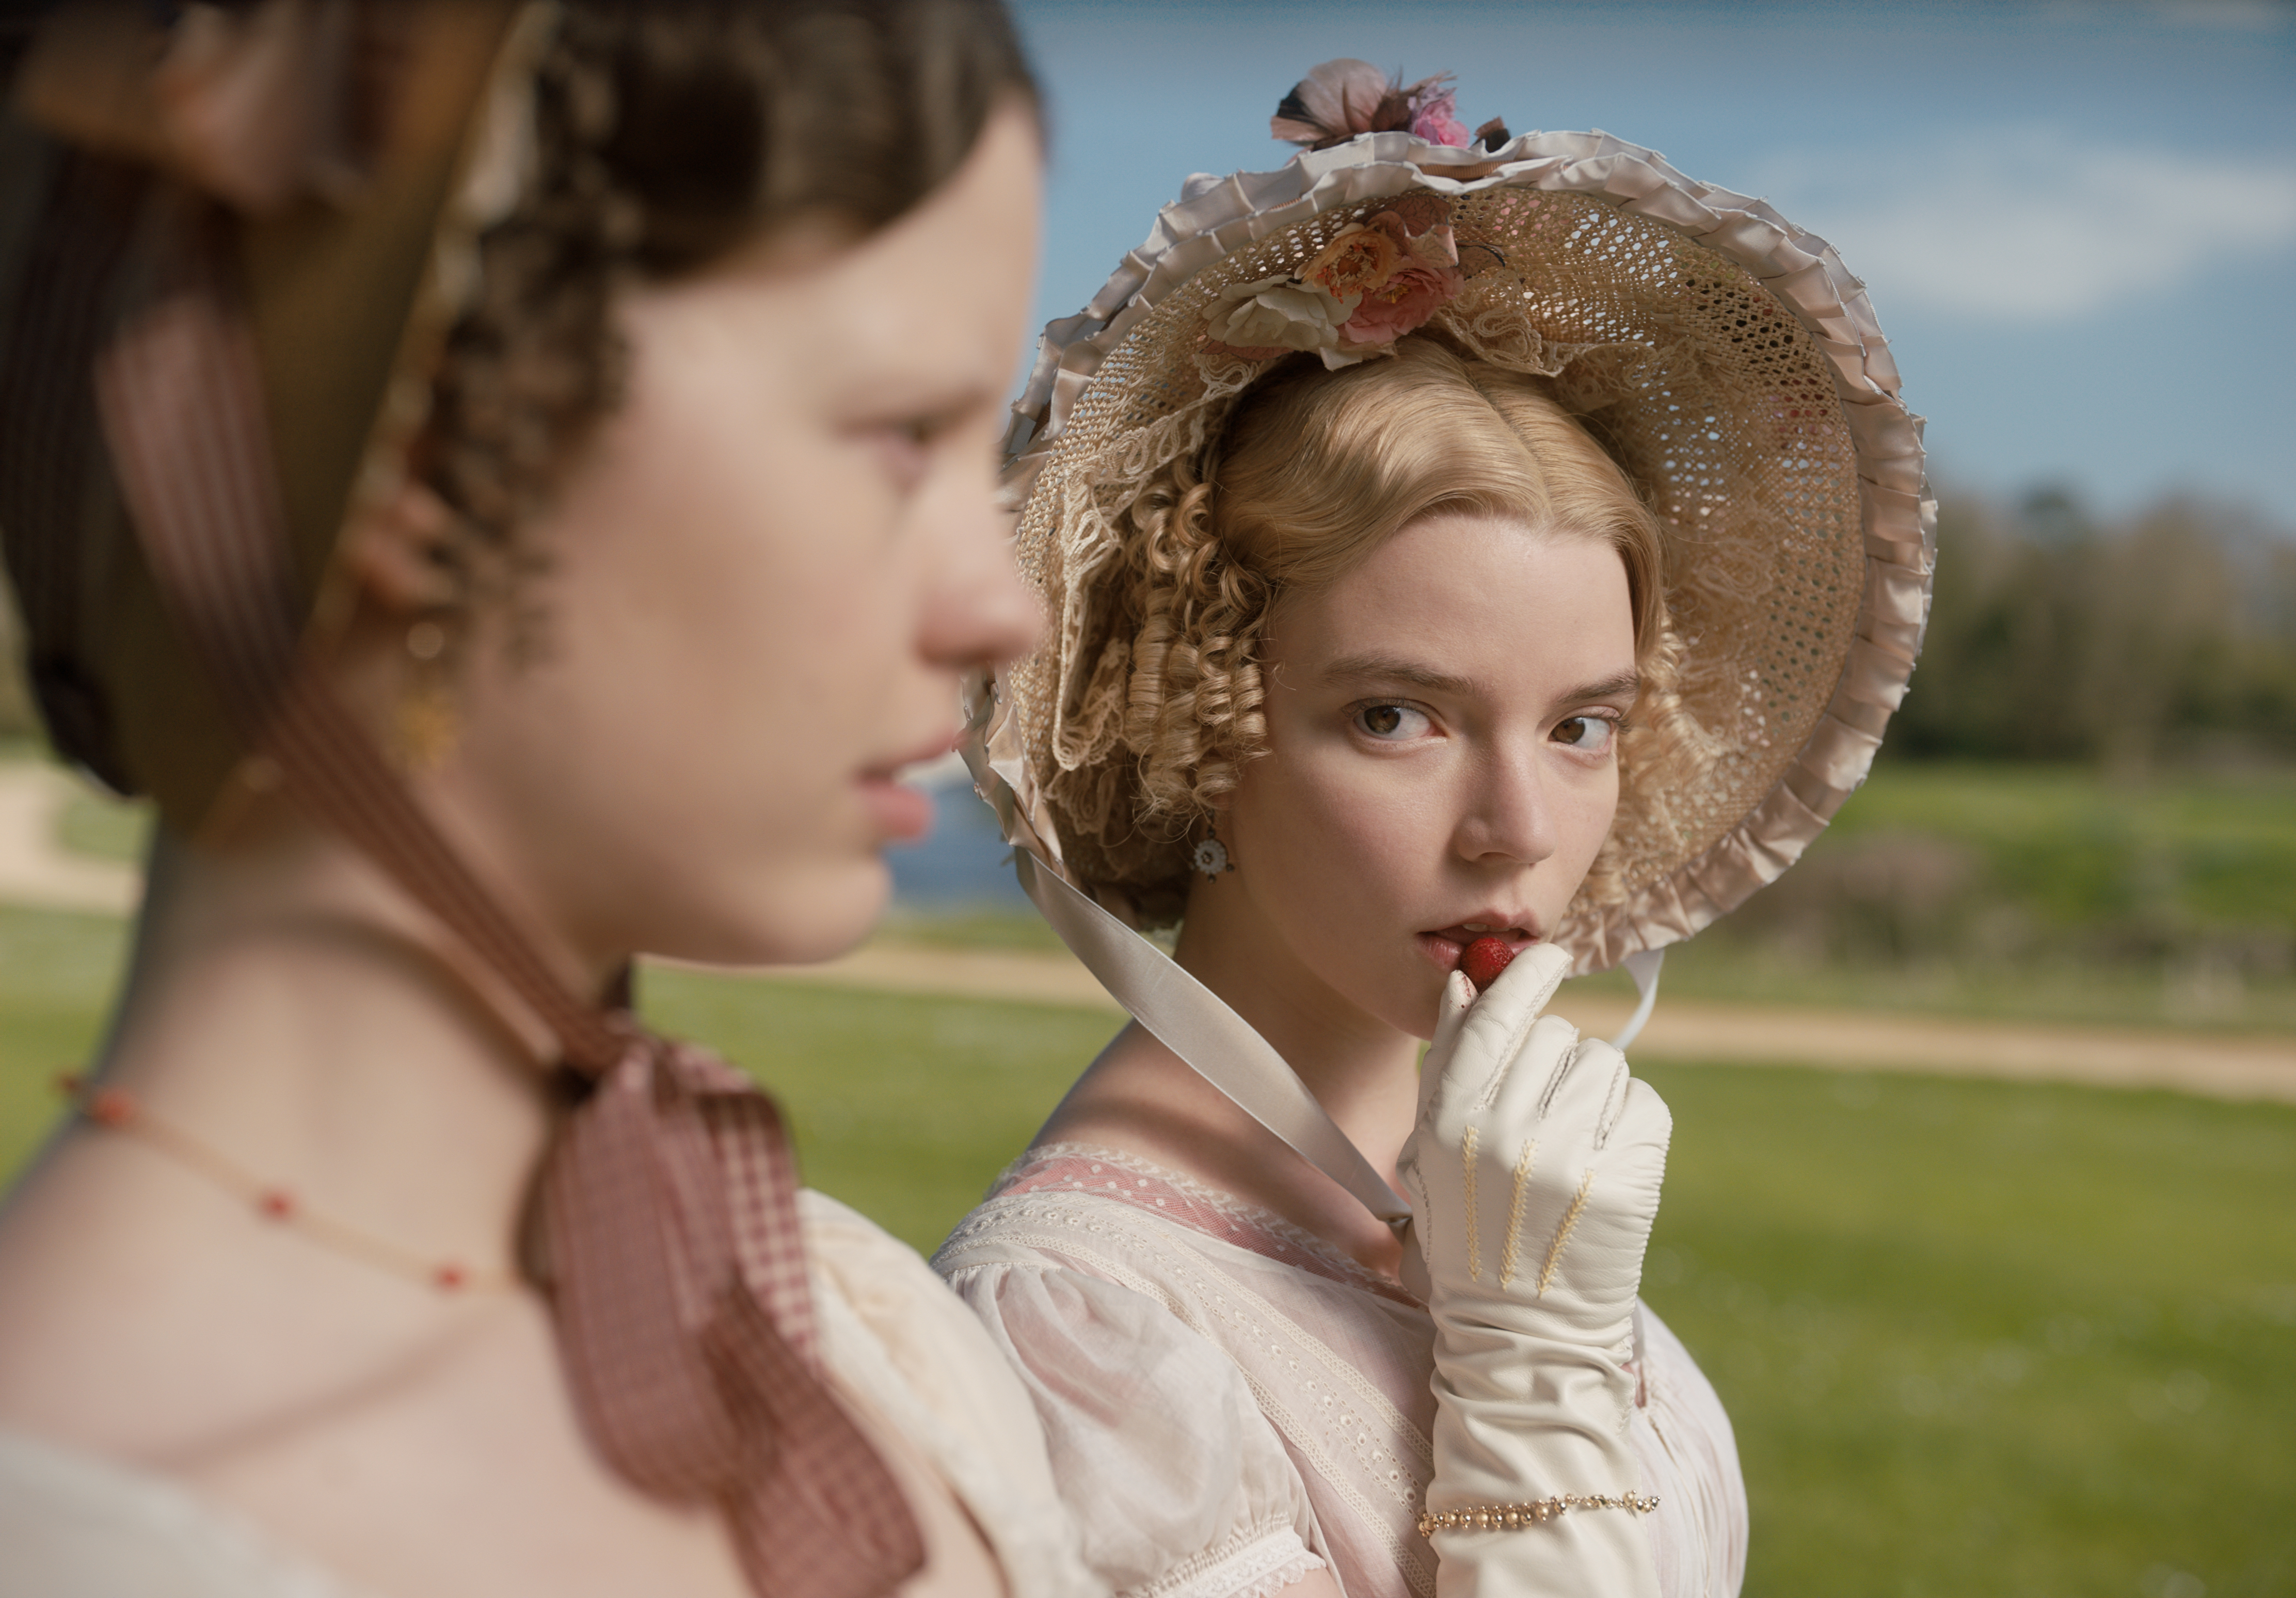 Mia Goth (left) as Harriet Smith and Anya Taylor-Joy (right) as Emma Woodhouse in a new adaptation of Jane Austen's 'Emma.'